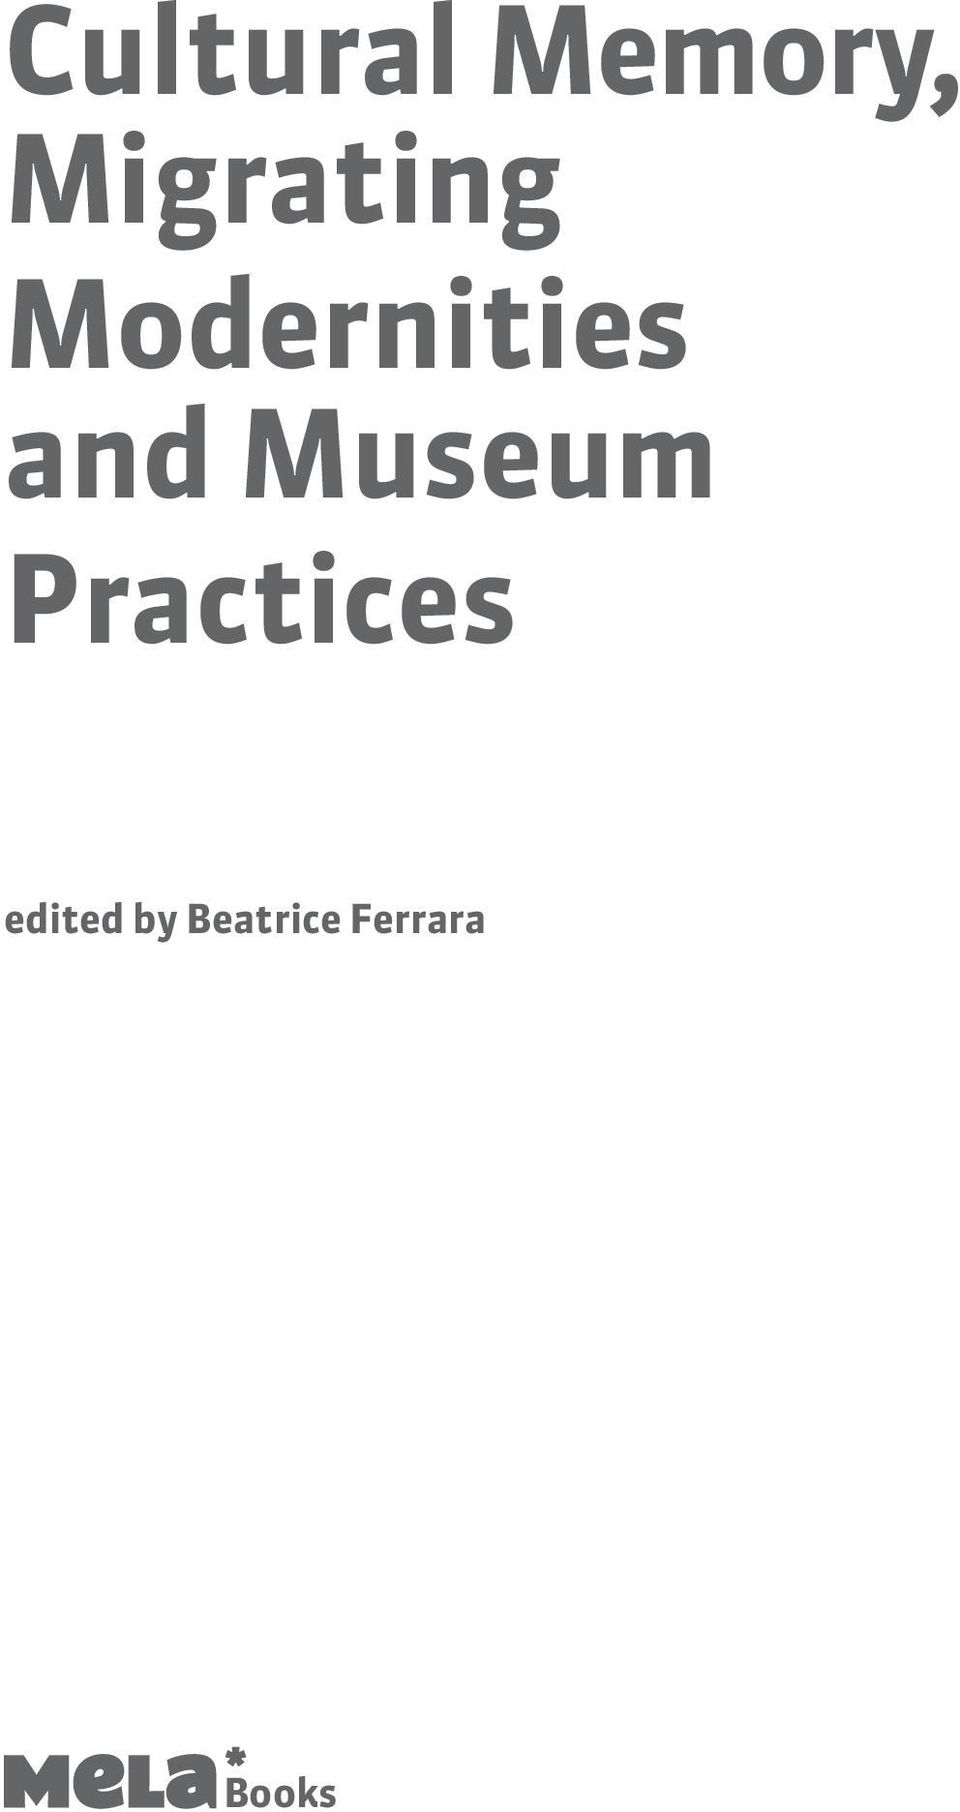 and Museum Practices